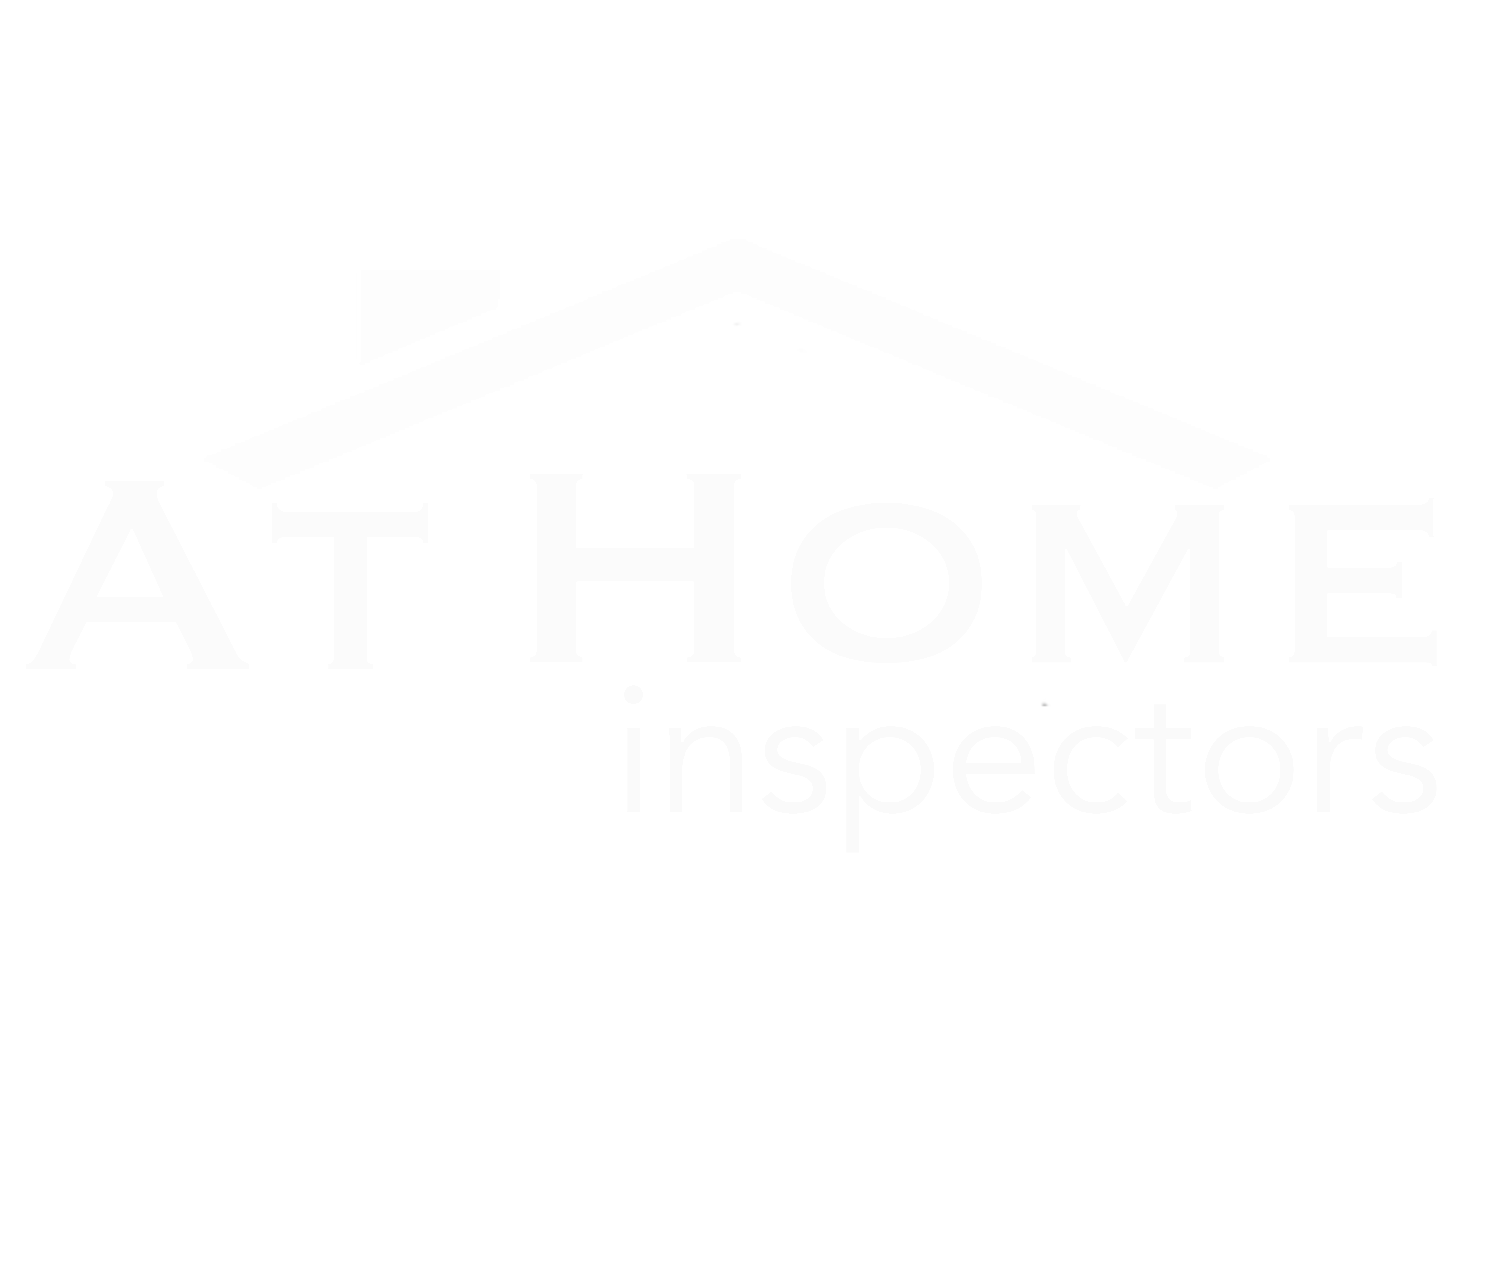 Home Inspector needed? | Chattanooga Area | Give us a try with At Home Inspectors